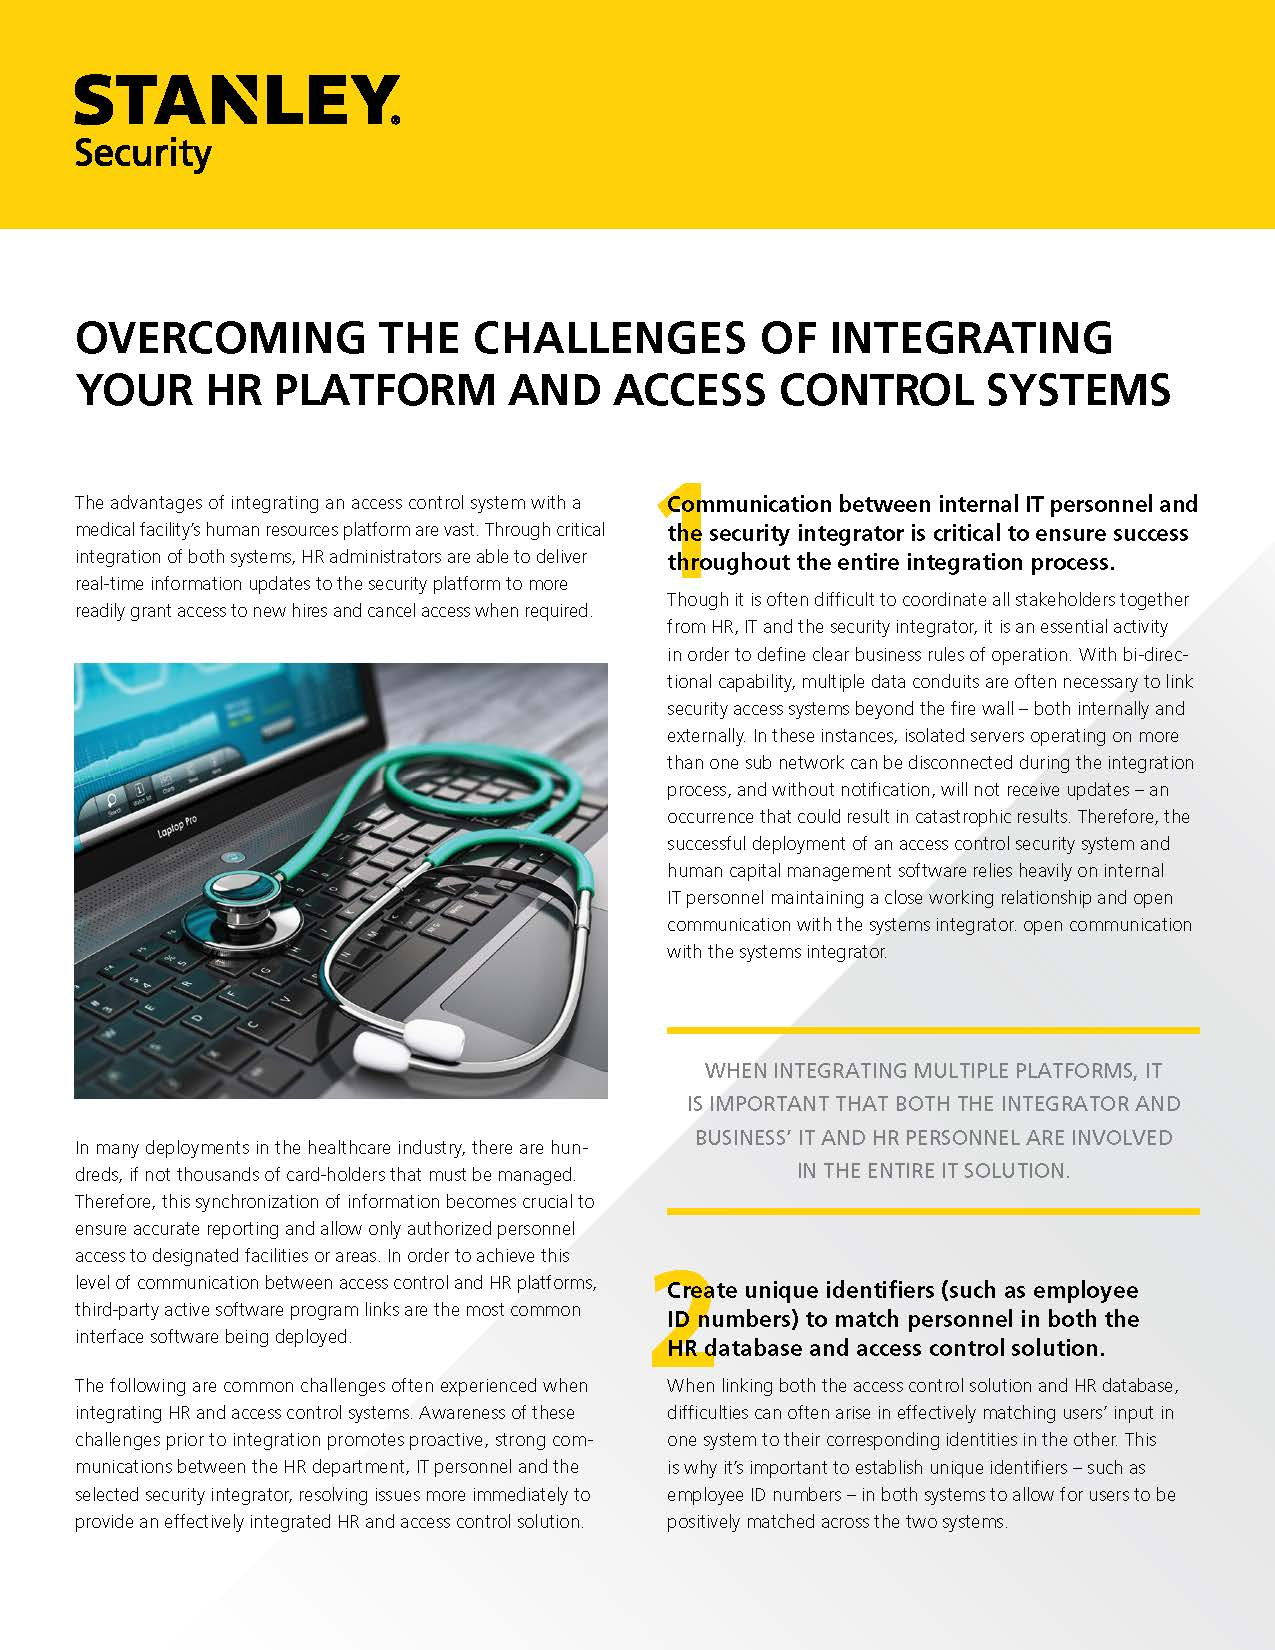 Overcoming the Challenges of Integrating Your HR Platform and